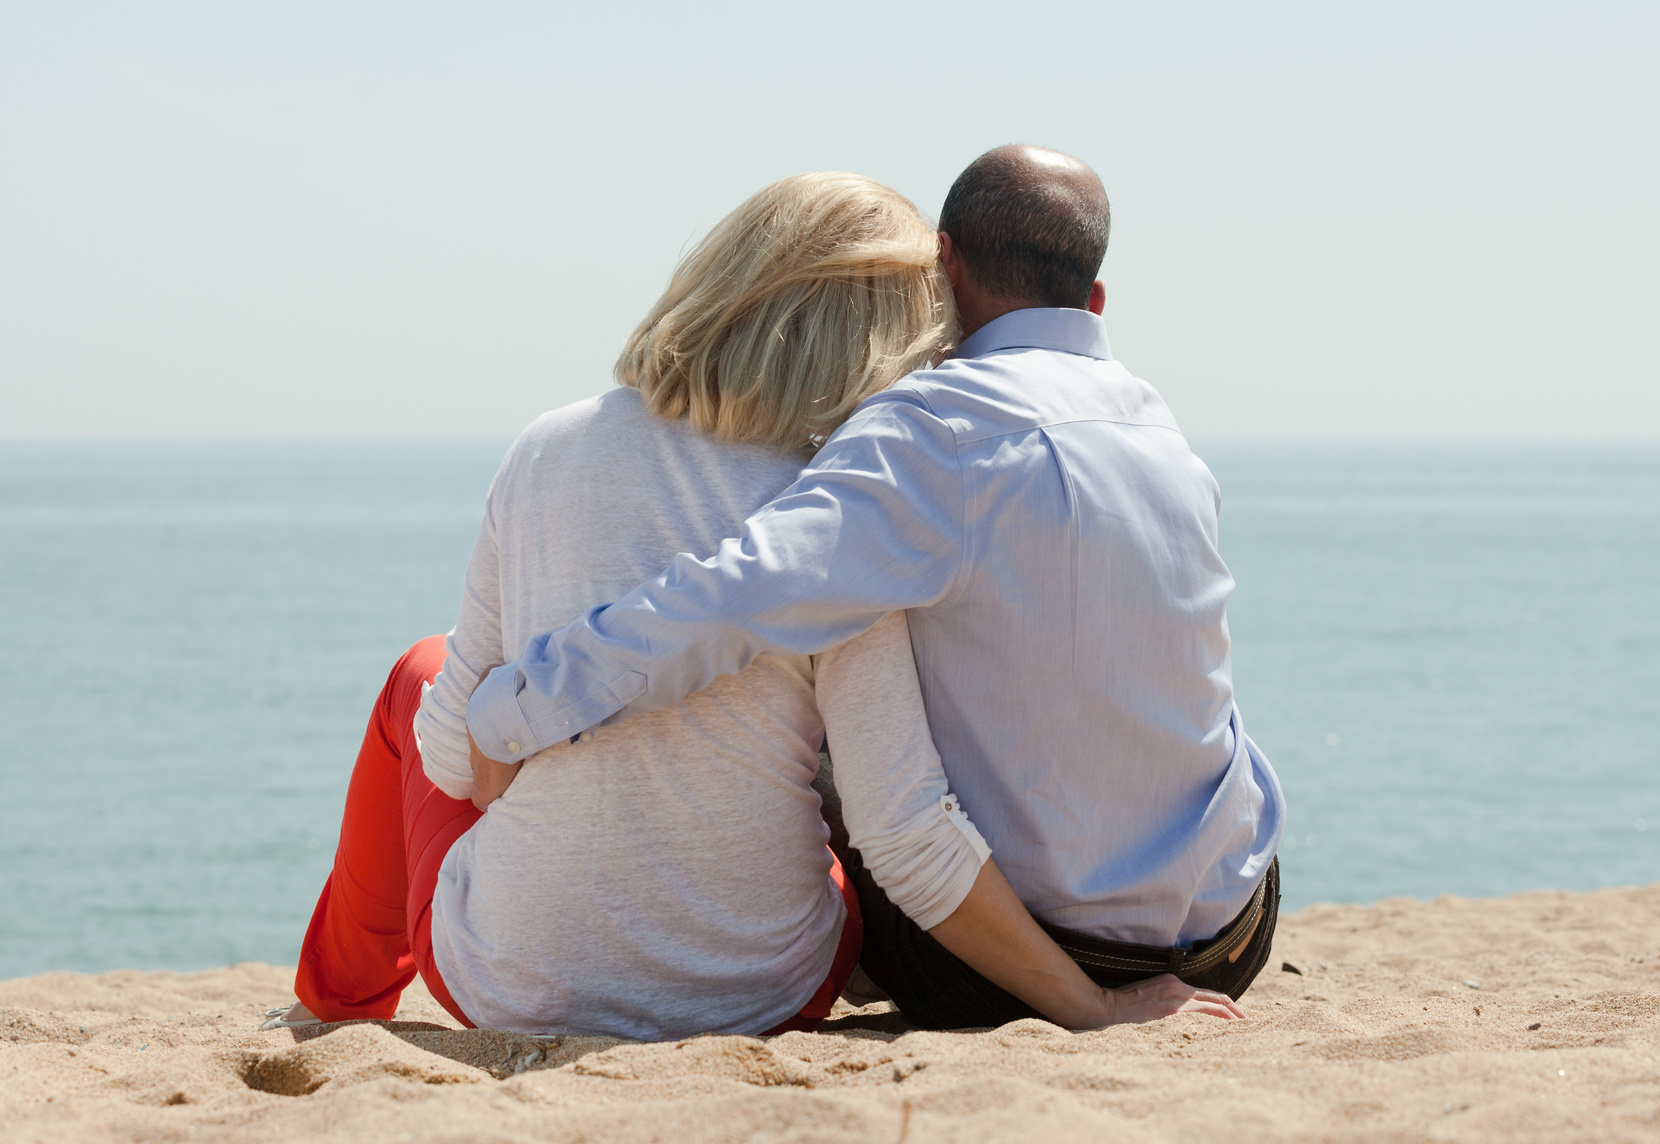 Mature lovers sitting on sand at beach and enjoying the view